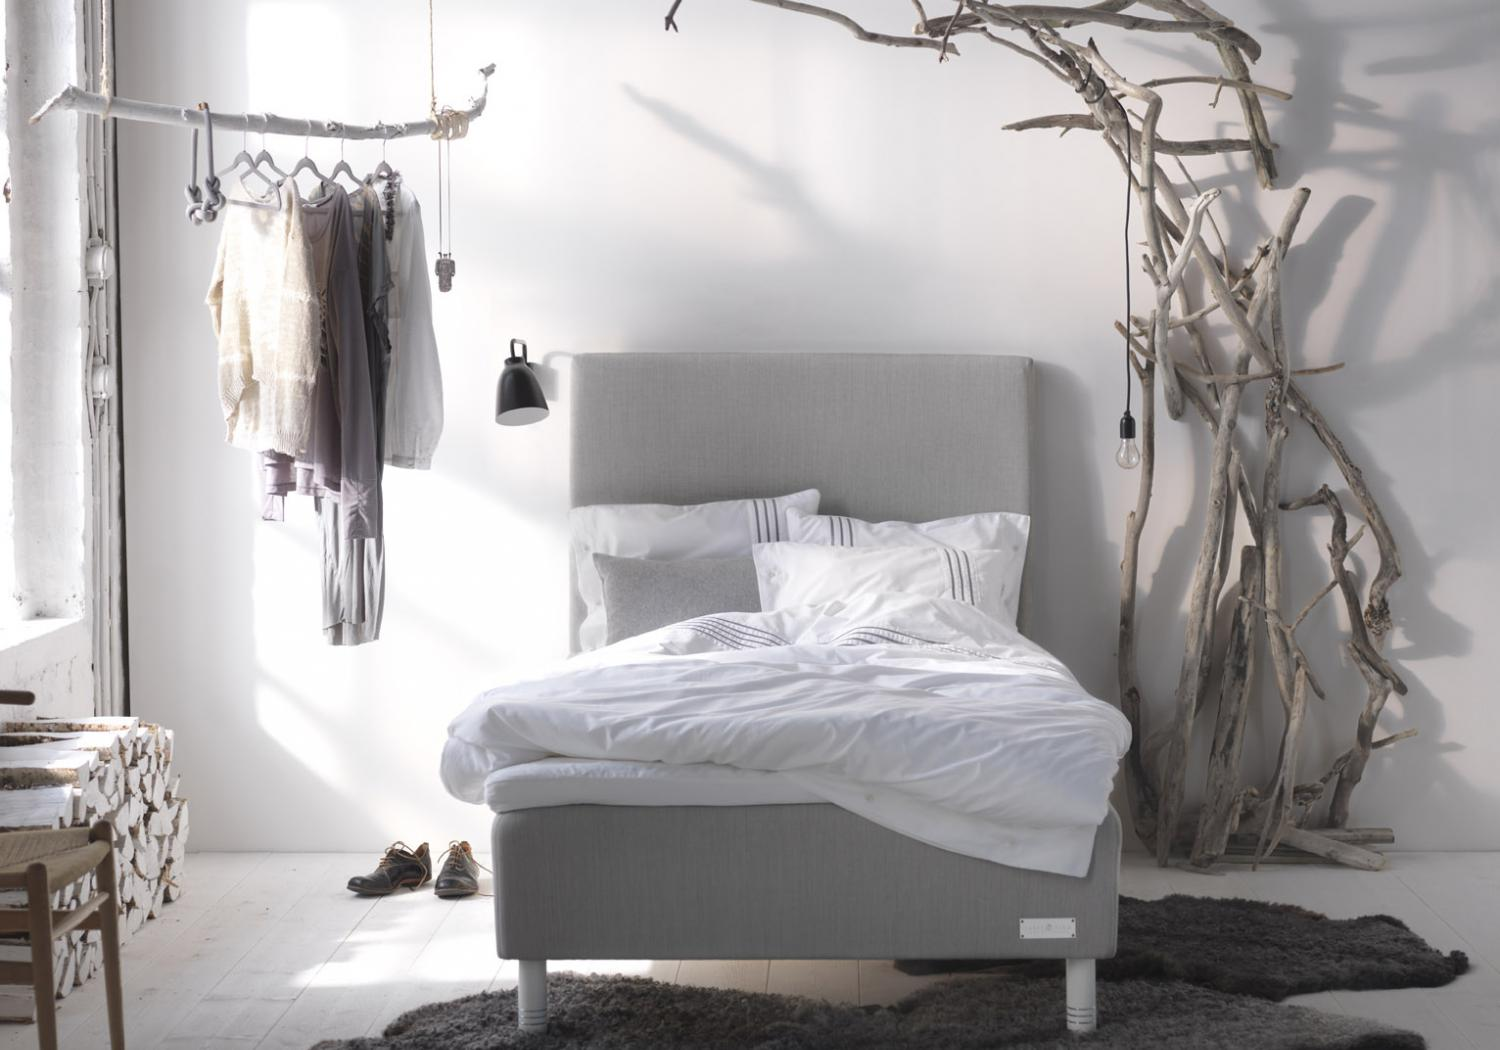 Carpe Diem Beds of Sweden: anniversary promotion